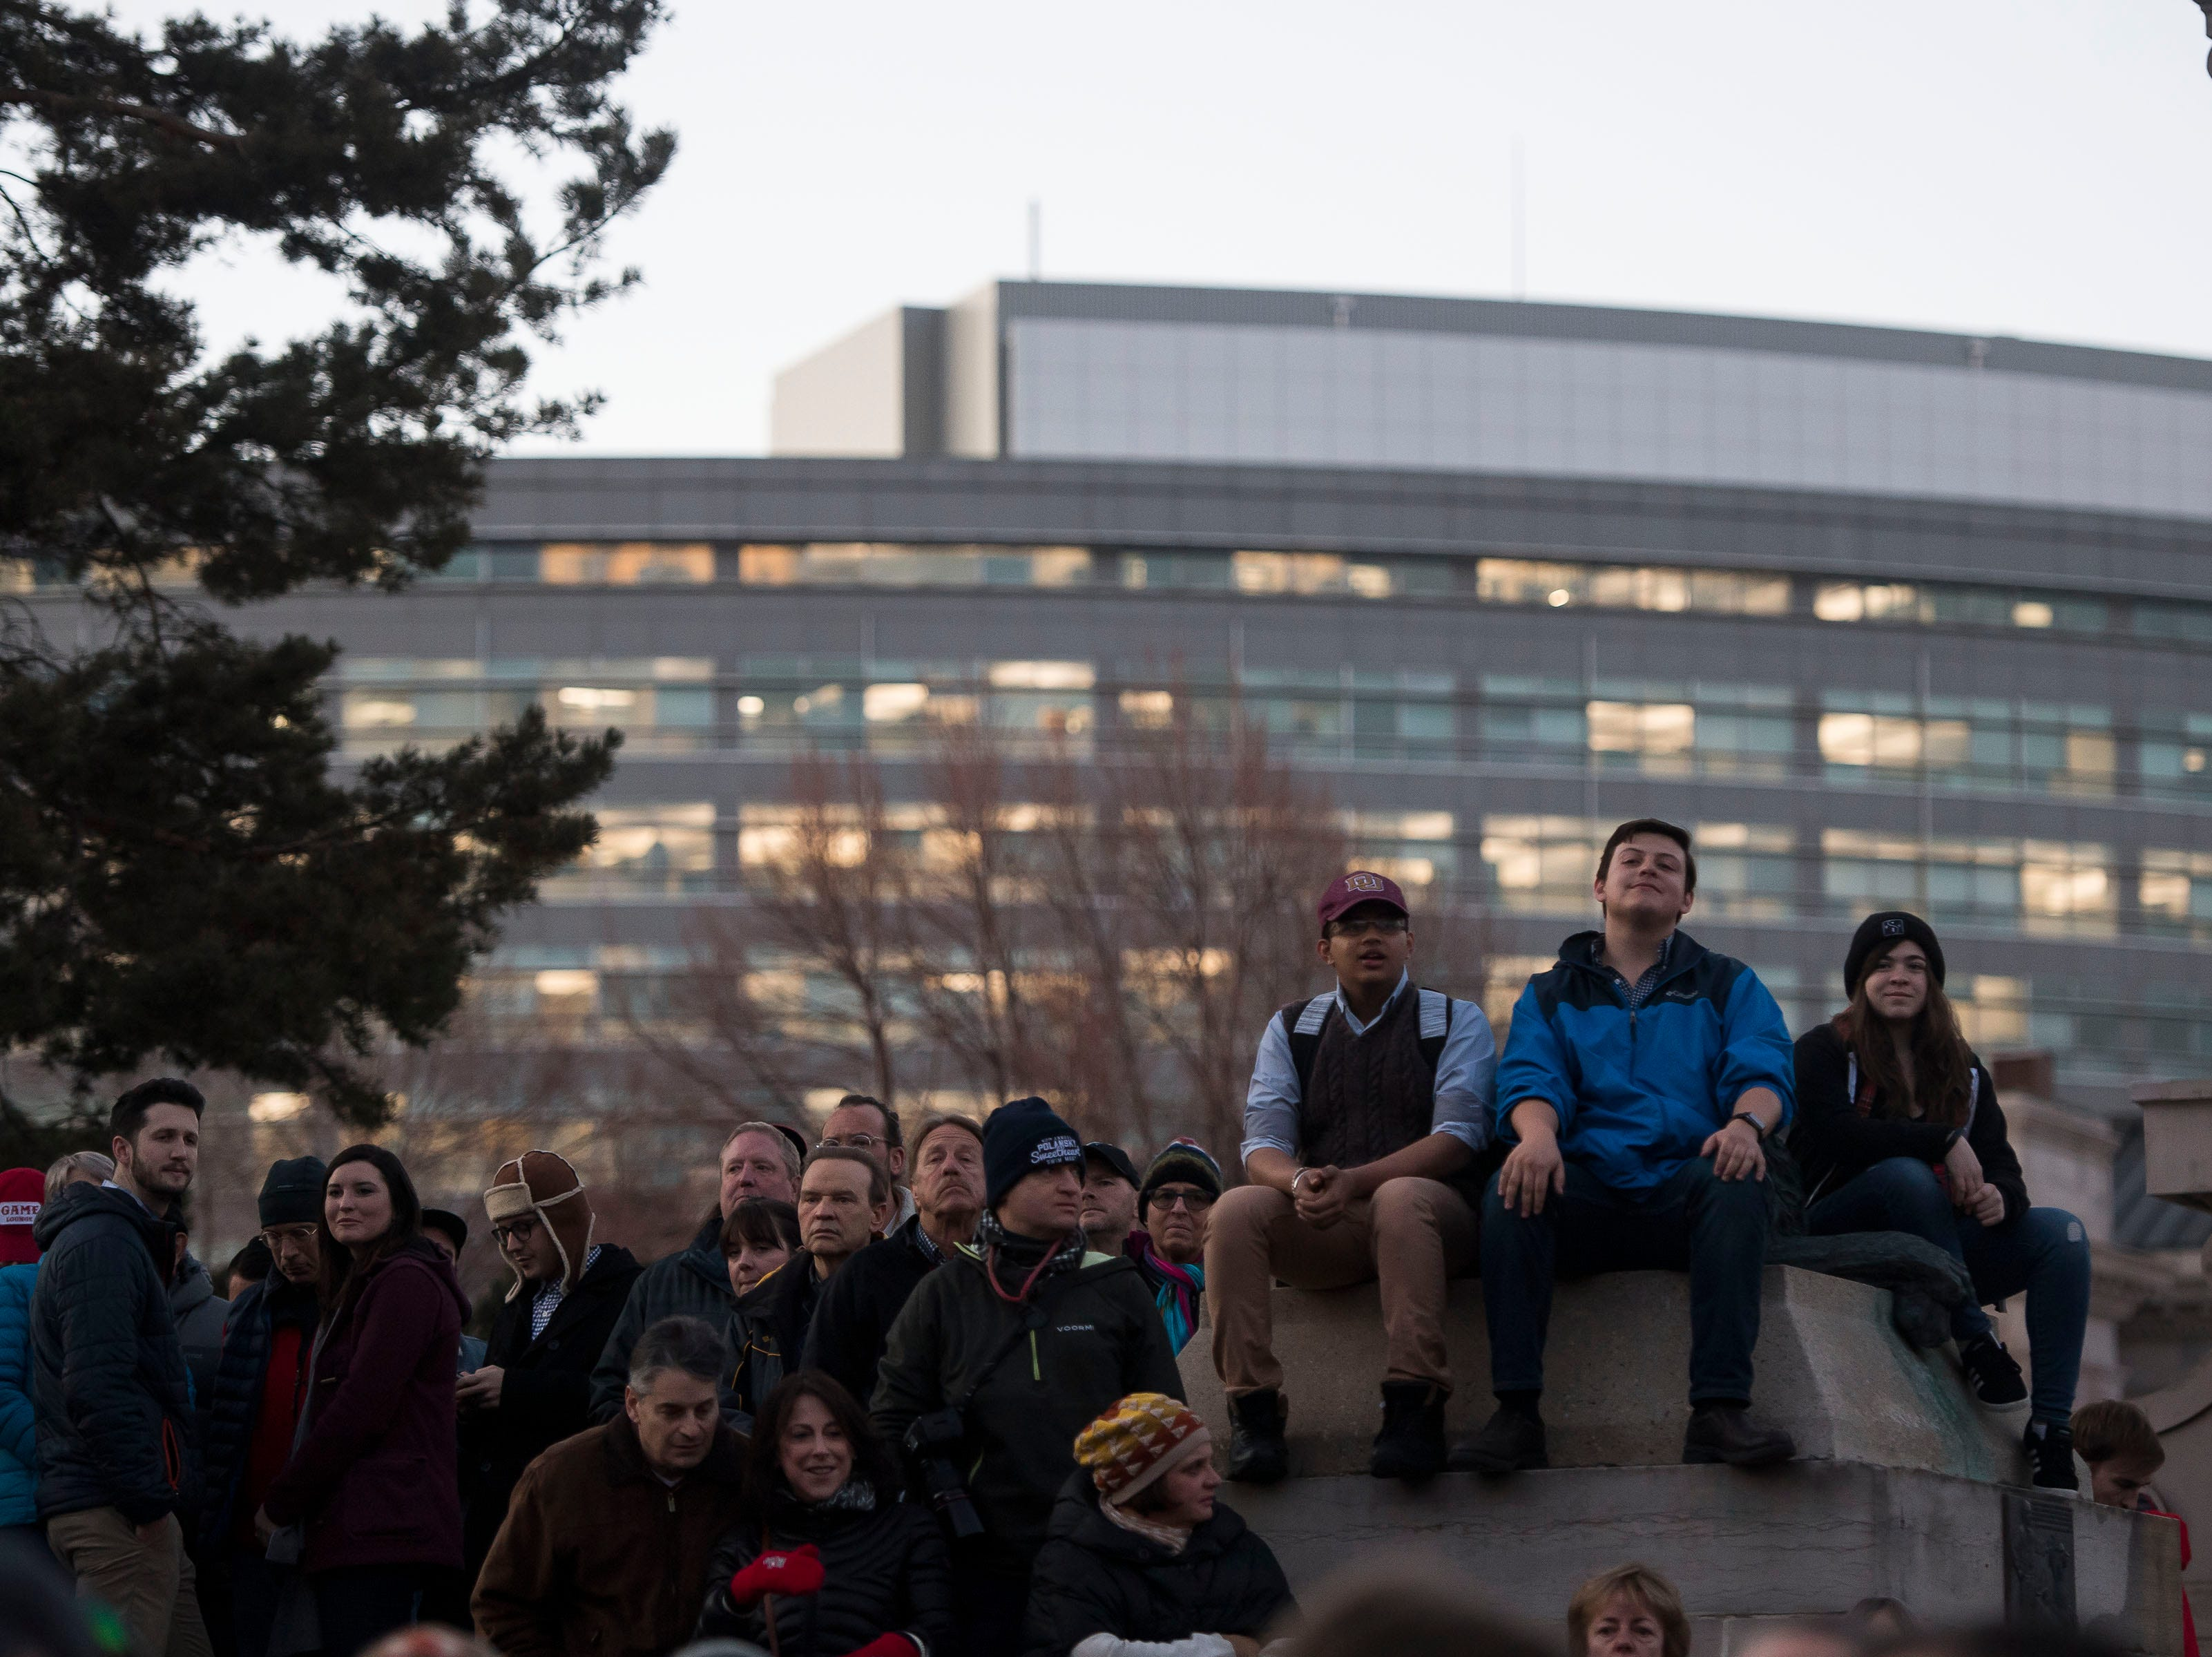 Rally participants sit around the outside of the amphitheater at the John Hickenlooper presidential campaign kick-off rally on Thursday, March 7, 2019, at the Greek Ampitheatre in Civic Center Park in Denver, Colo.